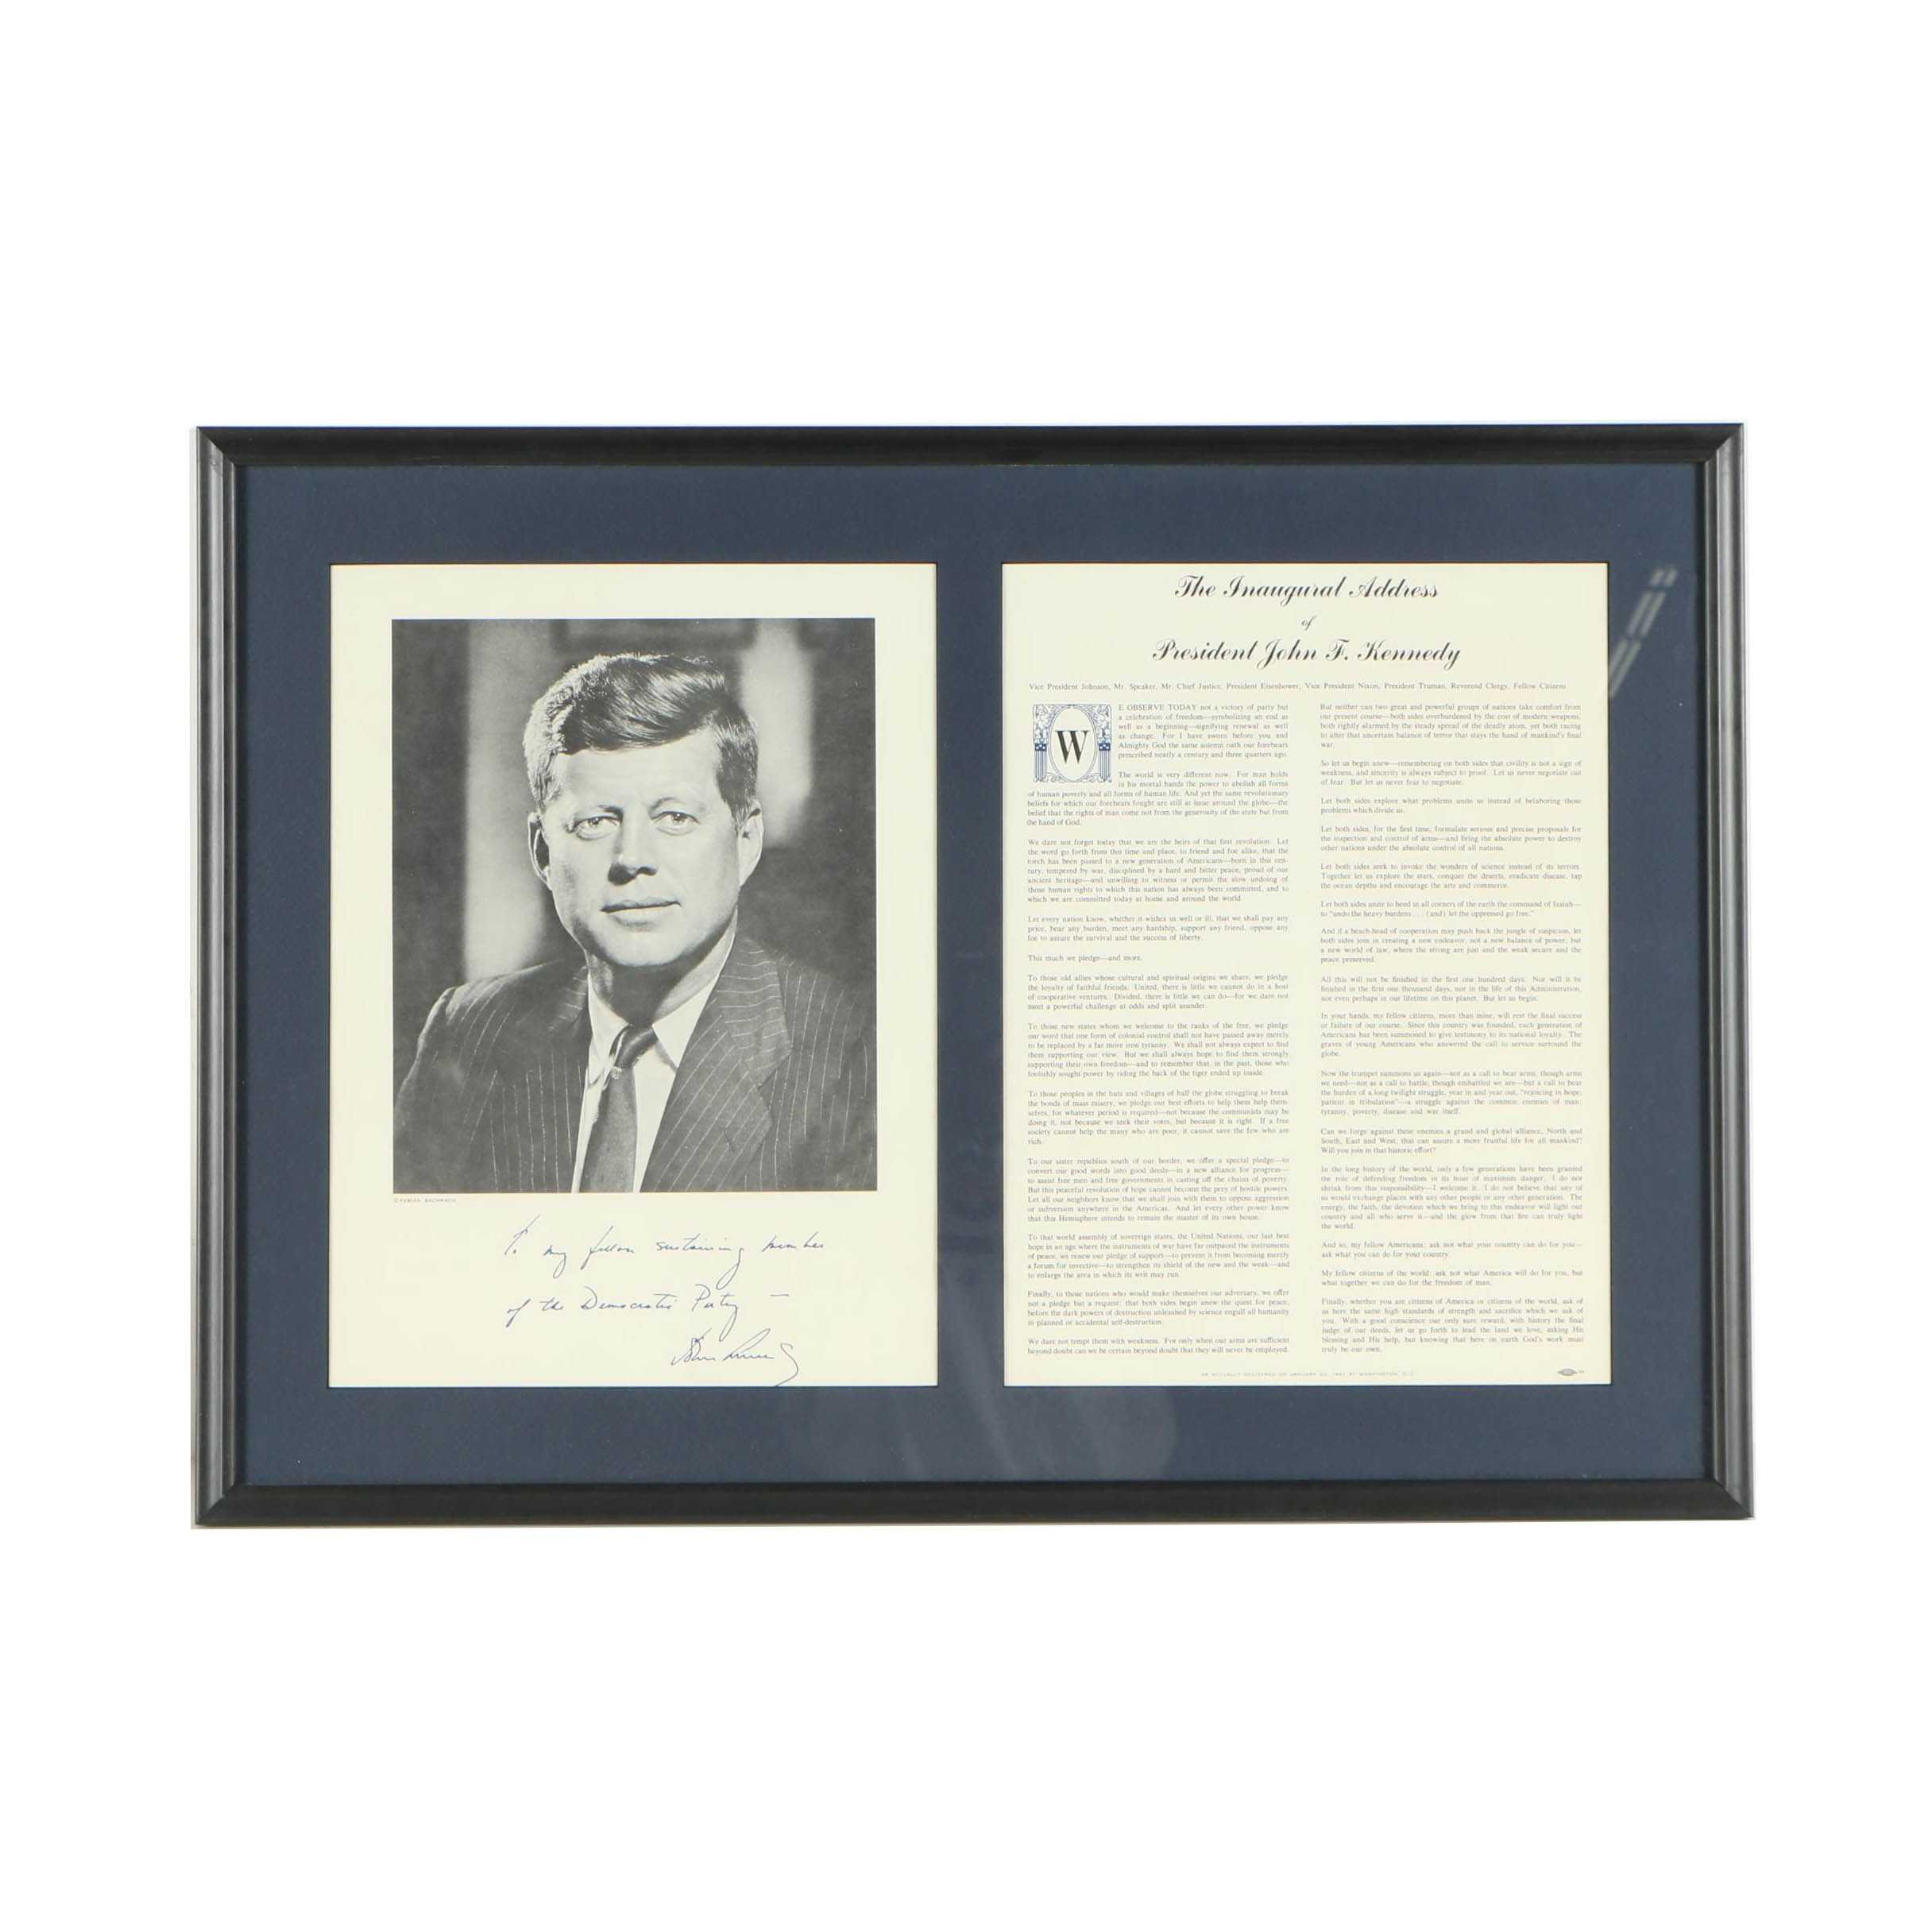 John F. Kennedy Offset Lithograph with Inaugural Address Transcript